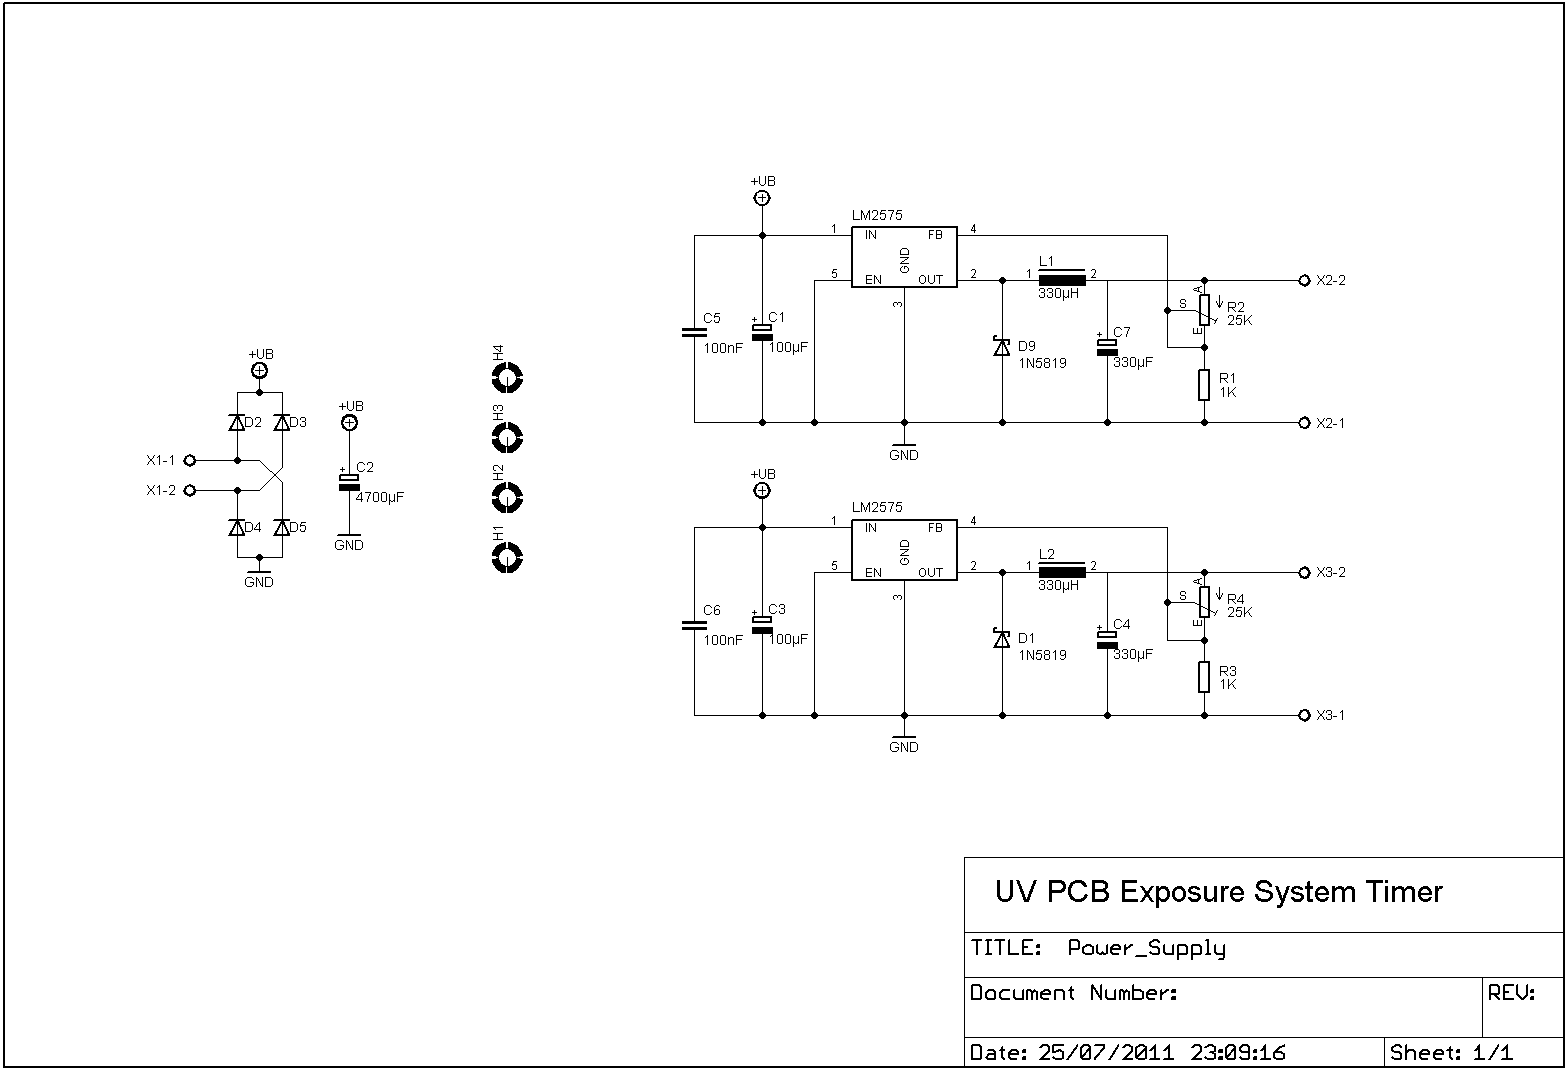 http://image.elektronicastynus.be/81/UV_PSU.png